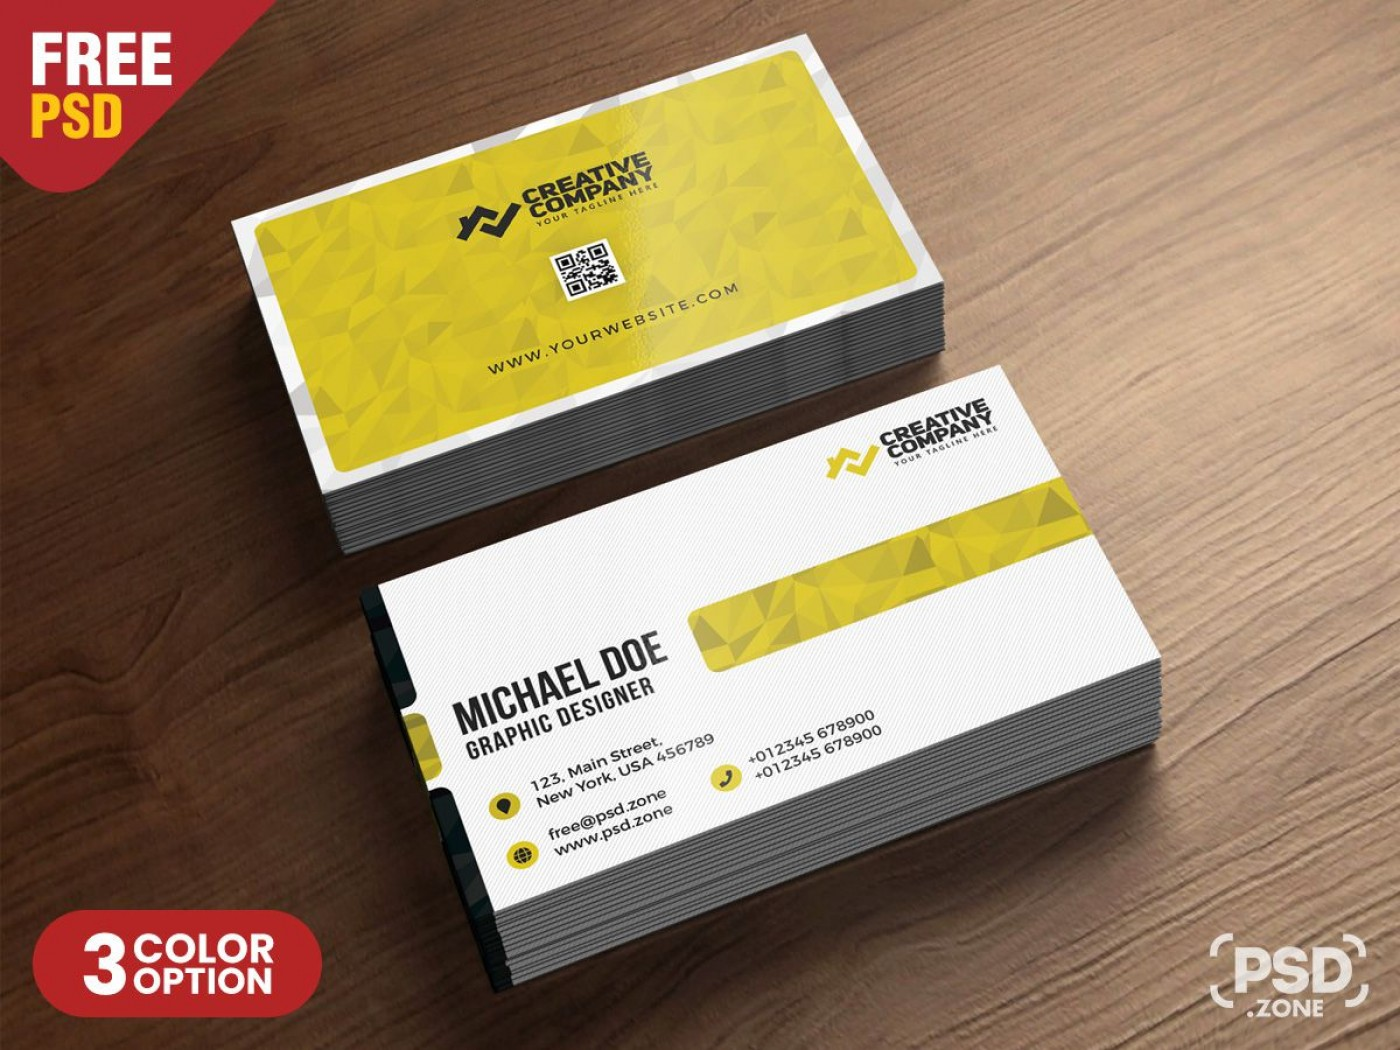 009 Unbelievable Simple Busines Card Template Psd High Definition  Design In Photoshop Minimalist Free1400